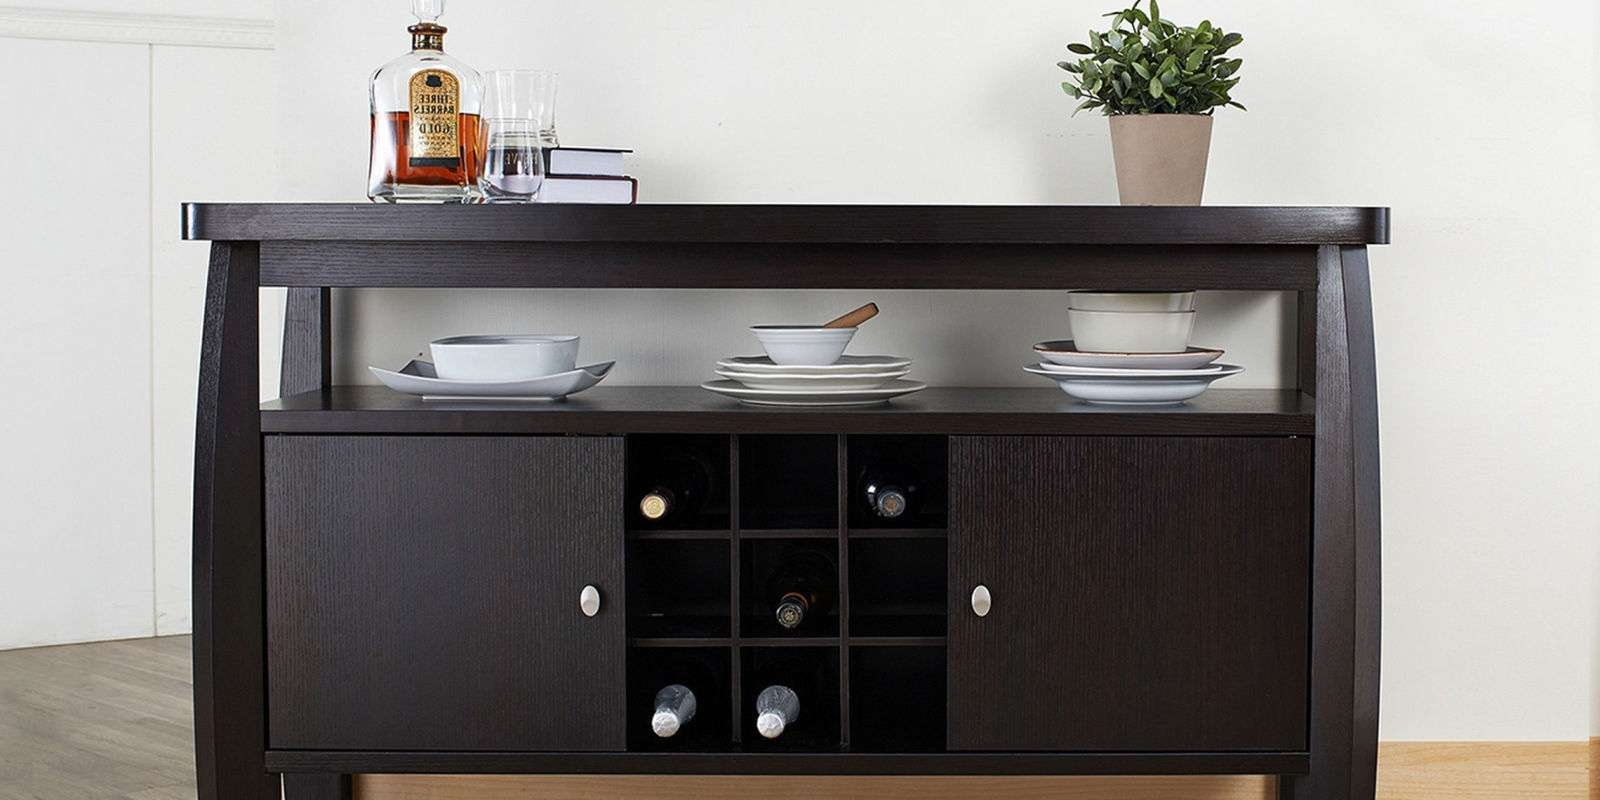 11 Best Sideboards And Buffets In 2018 – Reviews Of Sideboards In Buffet Sideboards (Gallery 10 of 20)